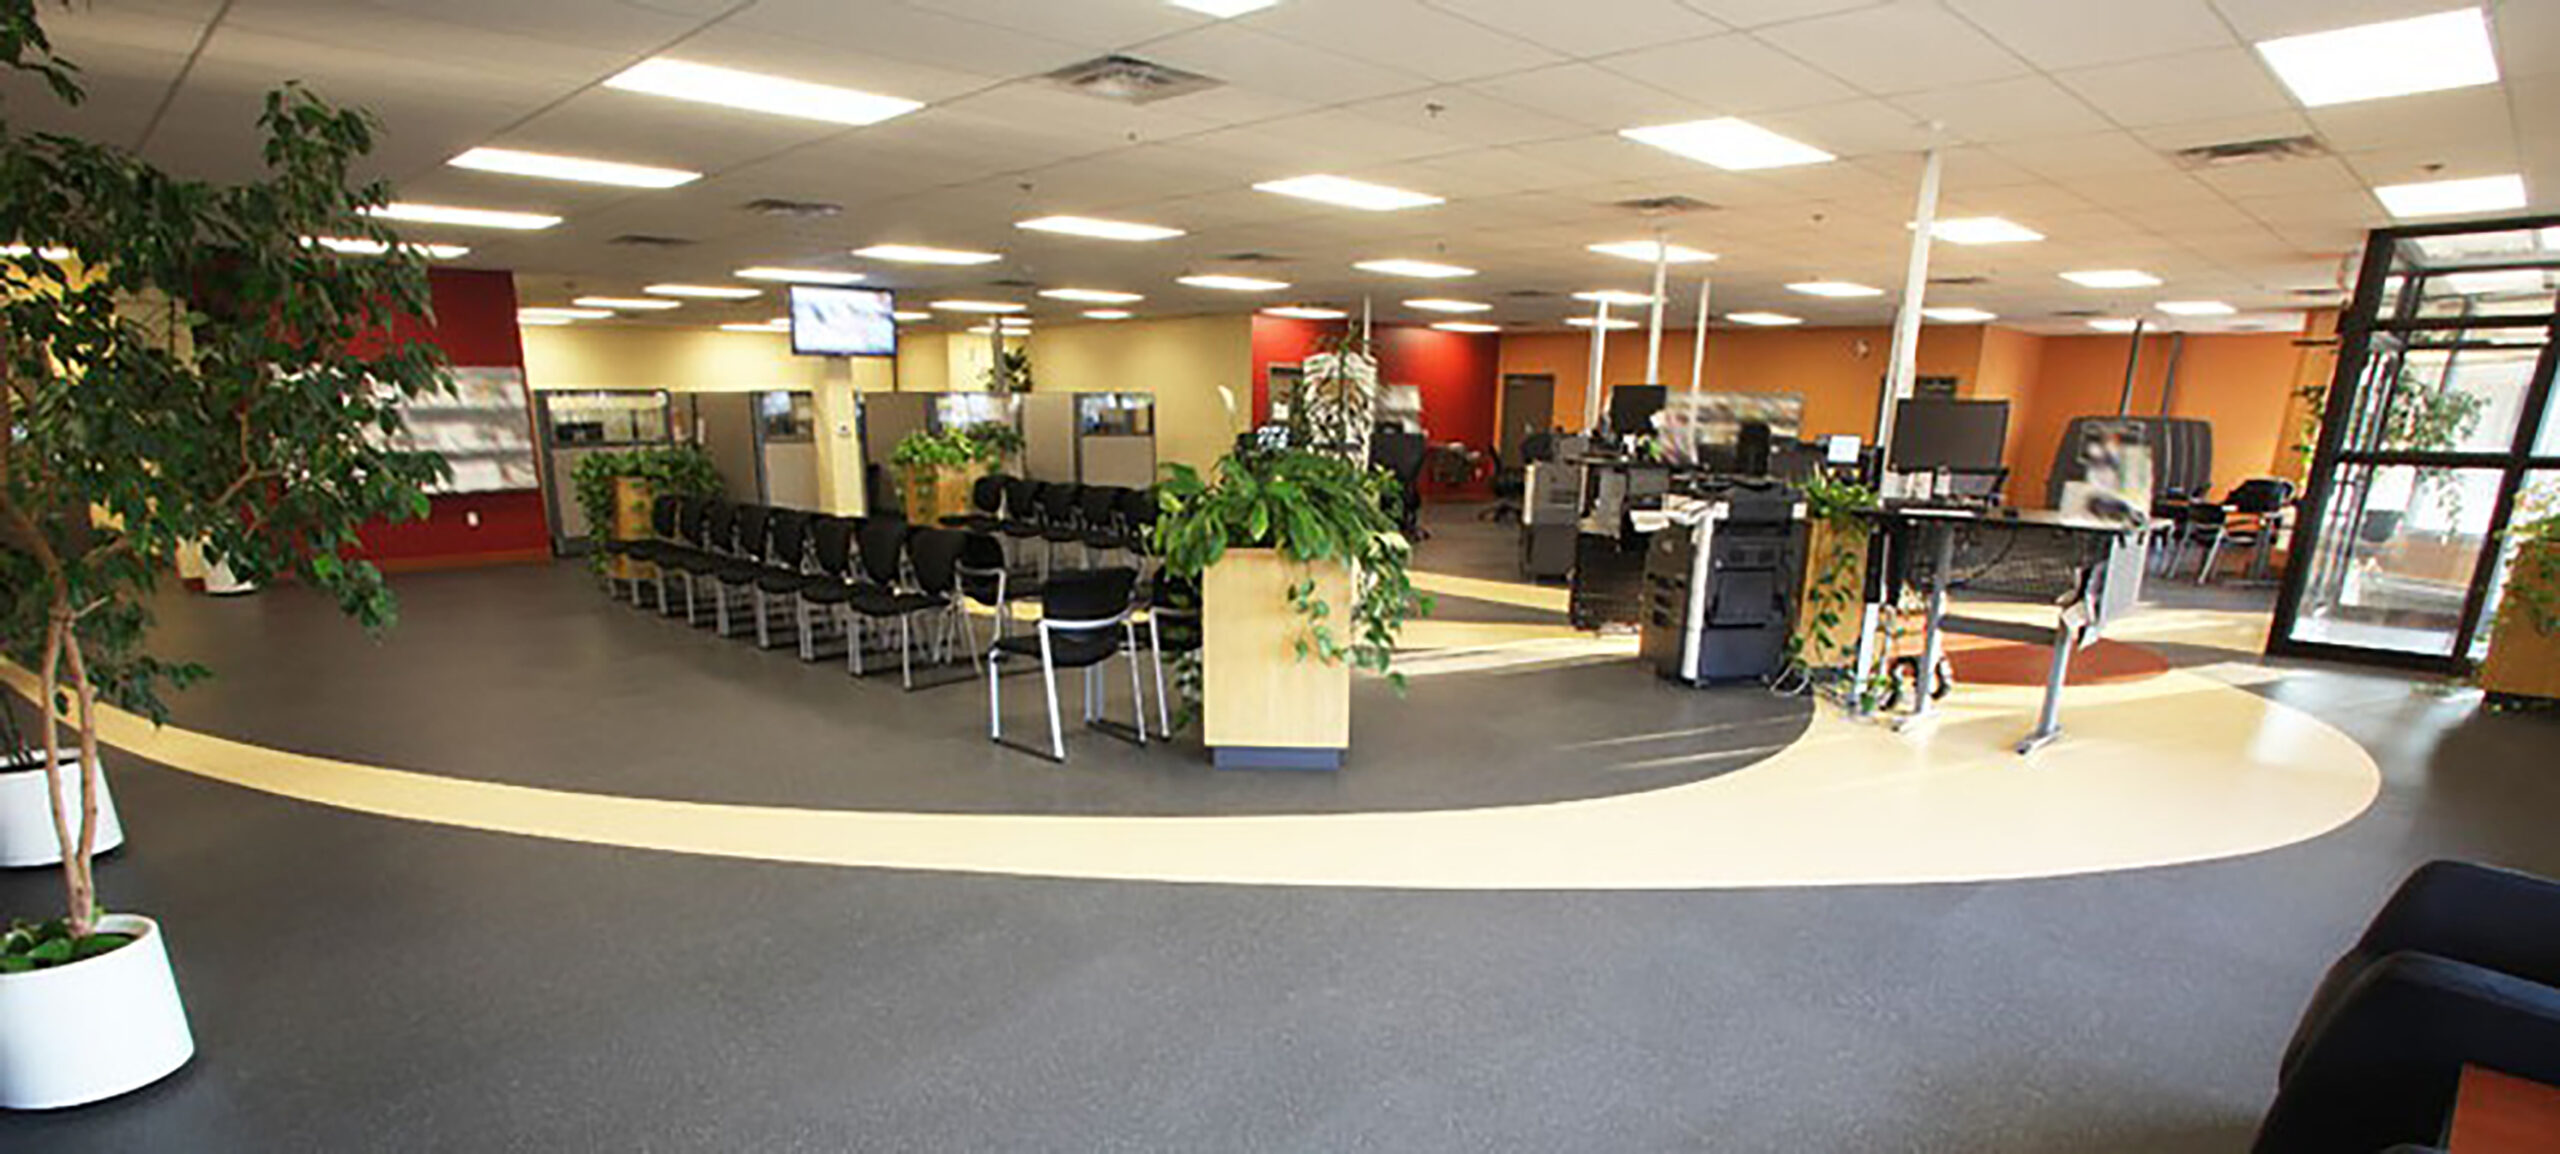 Open Concept Canadian Government Office.